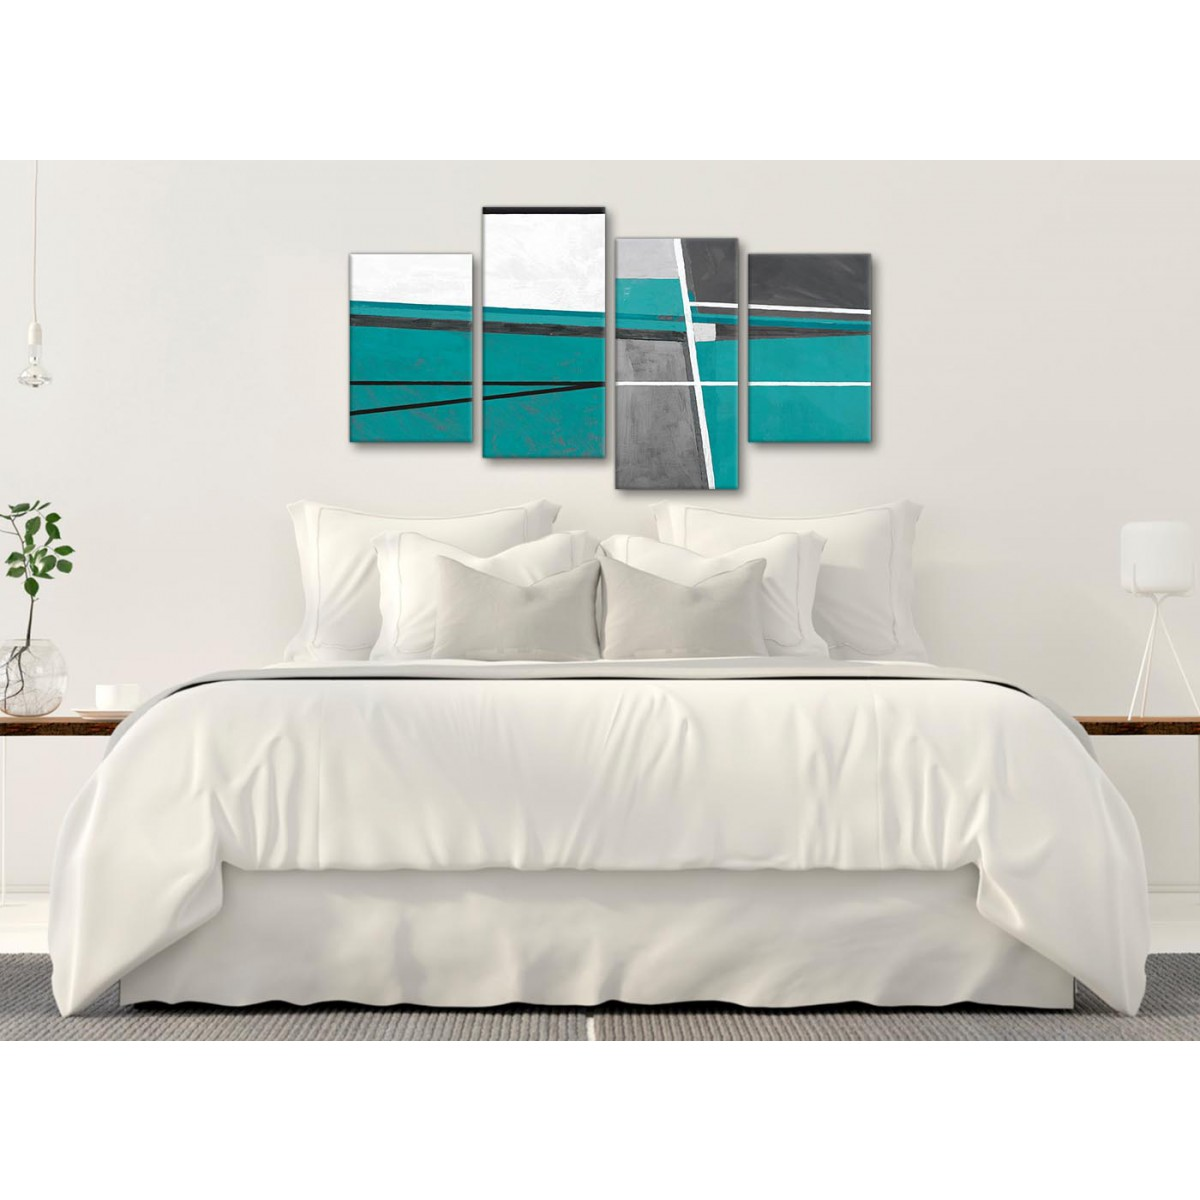 Art Décor: Large Teal Grey Painting Abstract Bedroom Canvas Wall Art